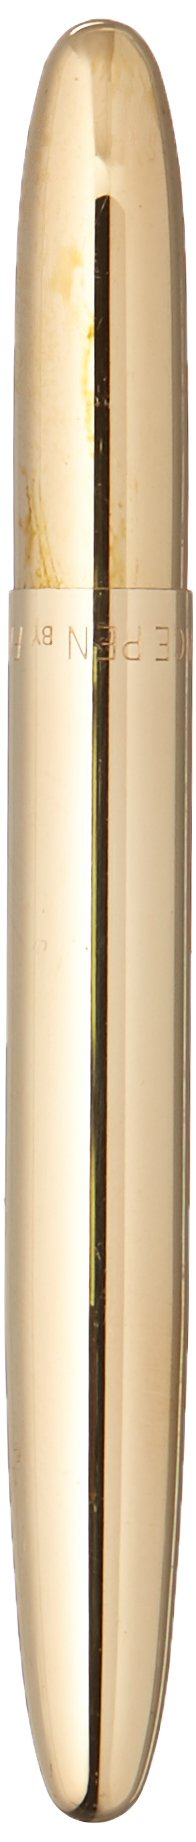 Fisher Space Pen Raw Brass Bullet Pen (400-raw)